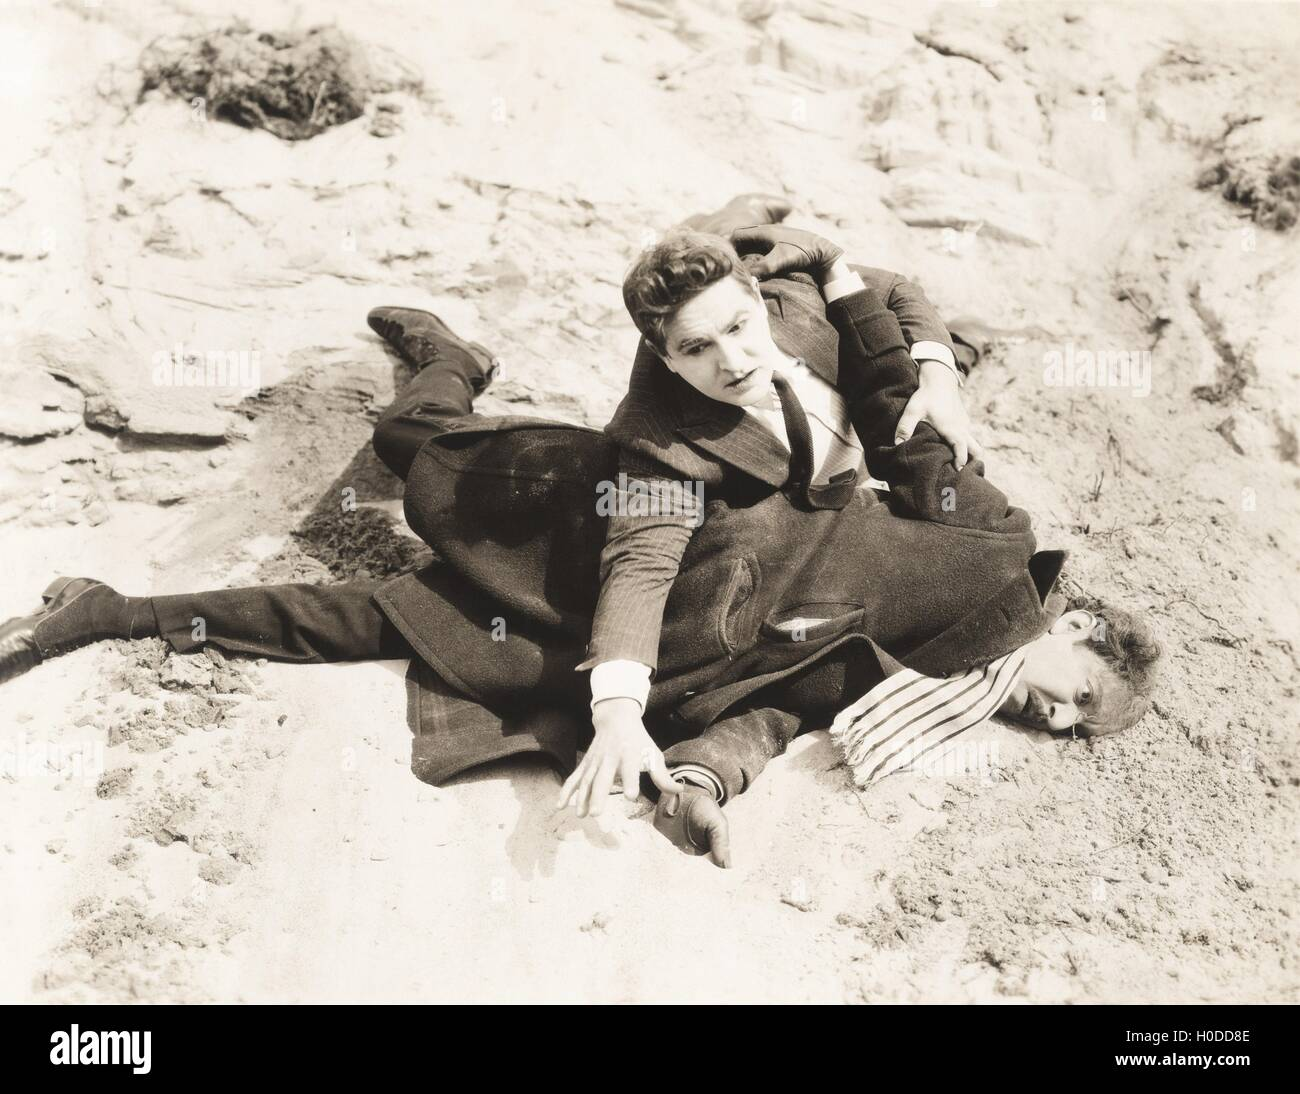 Man pinned to the ground during fight - Stock Image